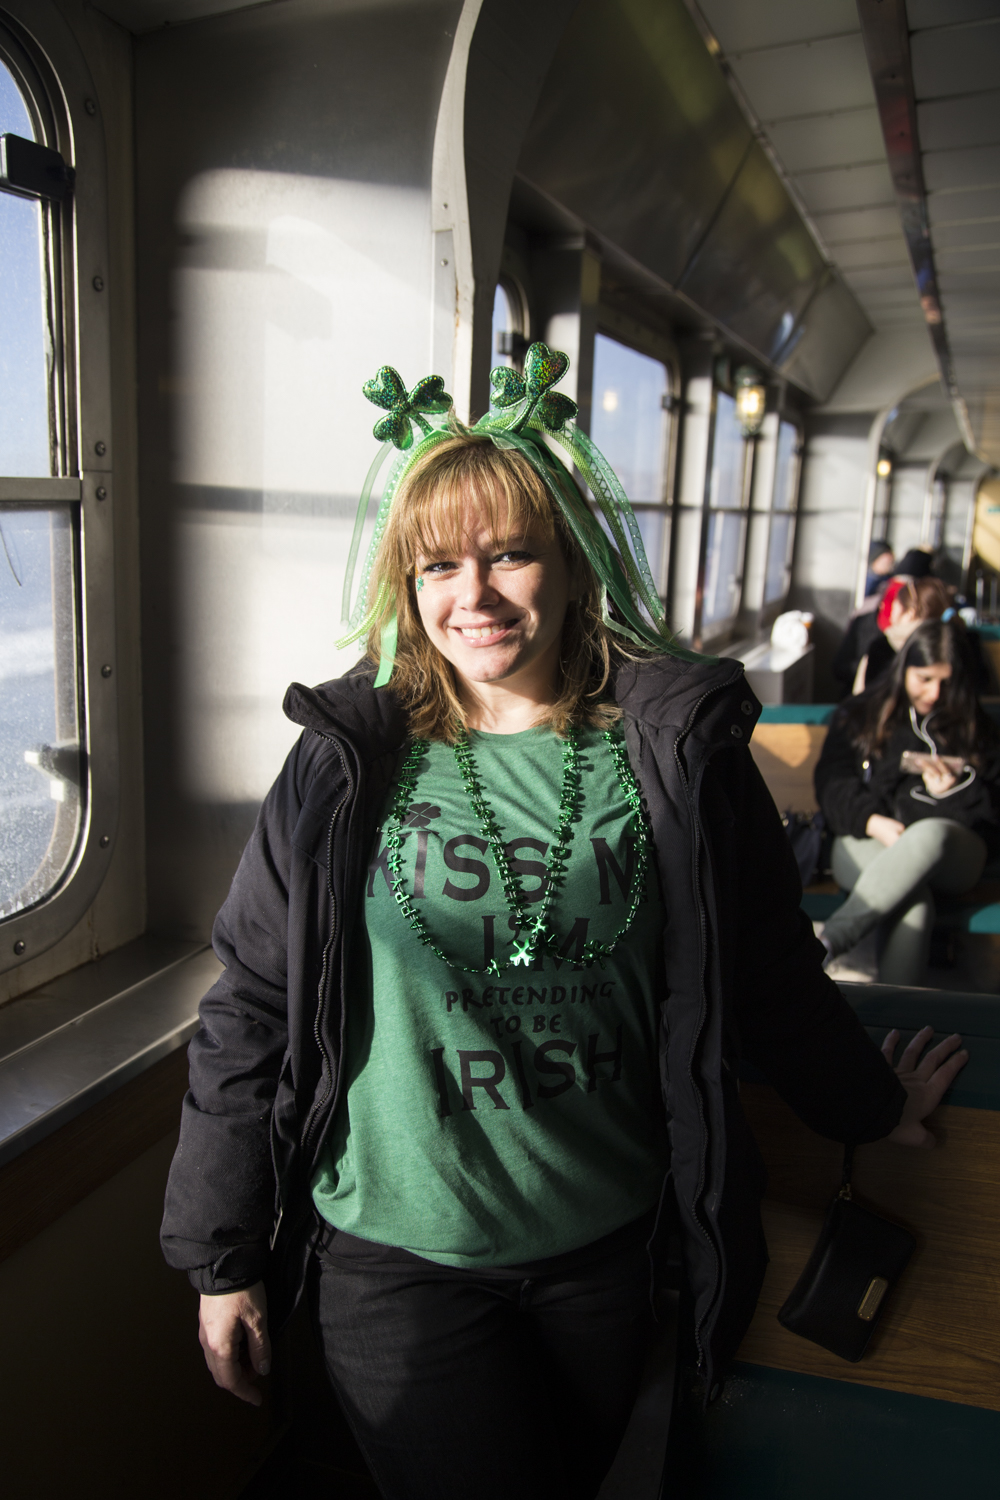 Luz Morales from Manhattan rides the Staten Island Ferry to Manhattan for the St. Patrick's Day Parade. (Staten Island Advance/Shira Stoll)